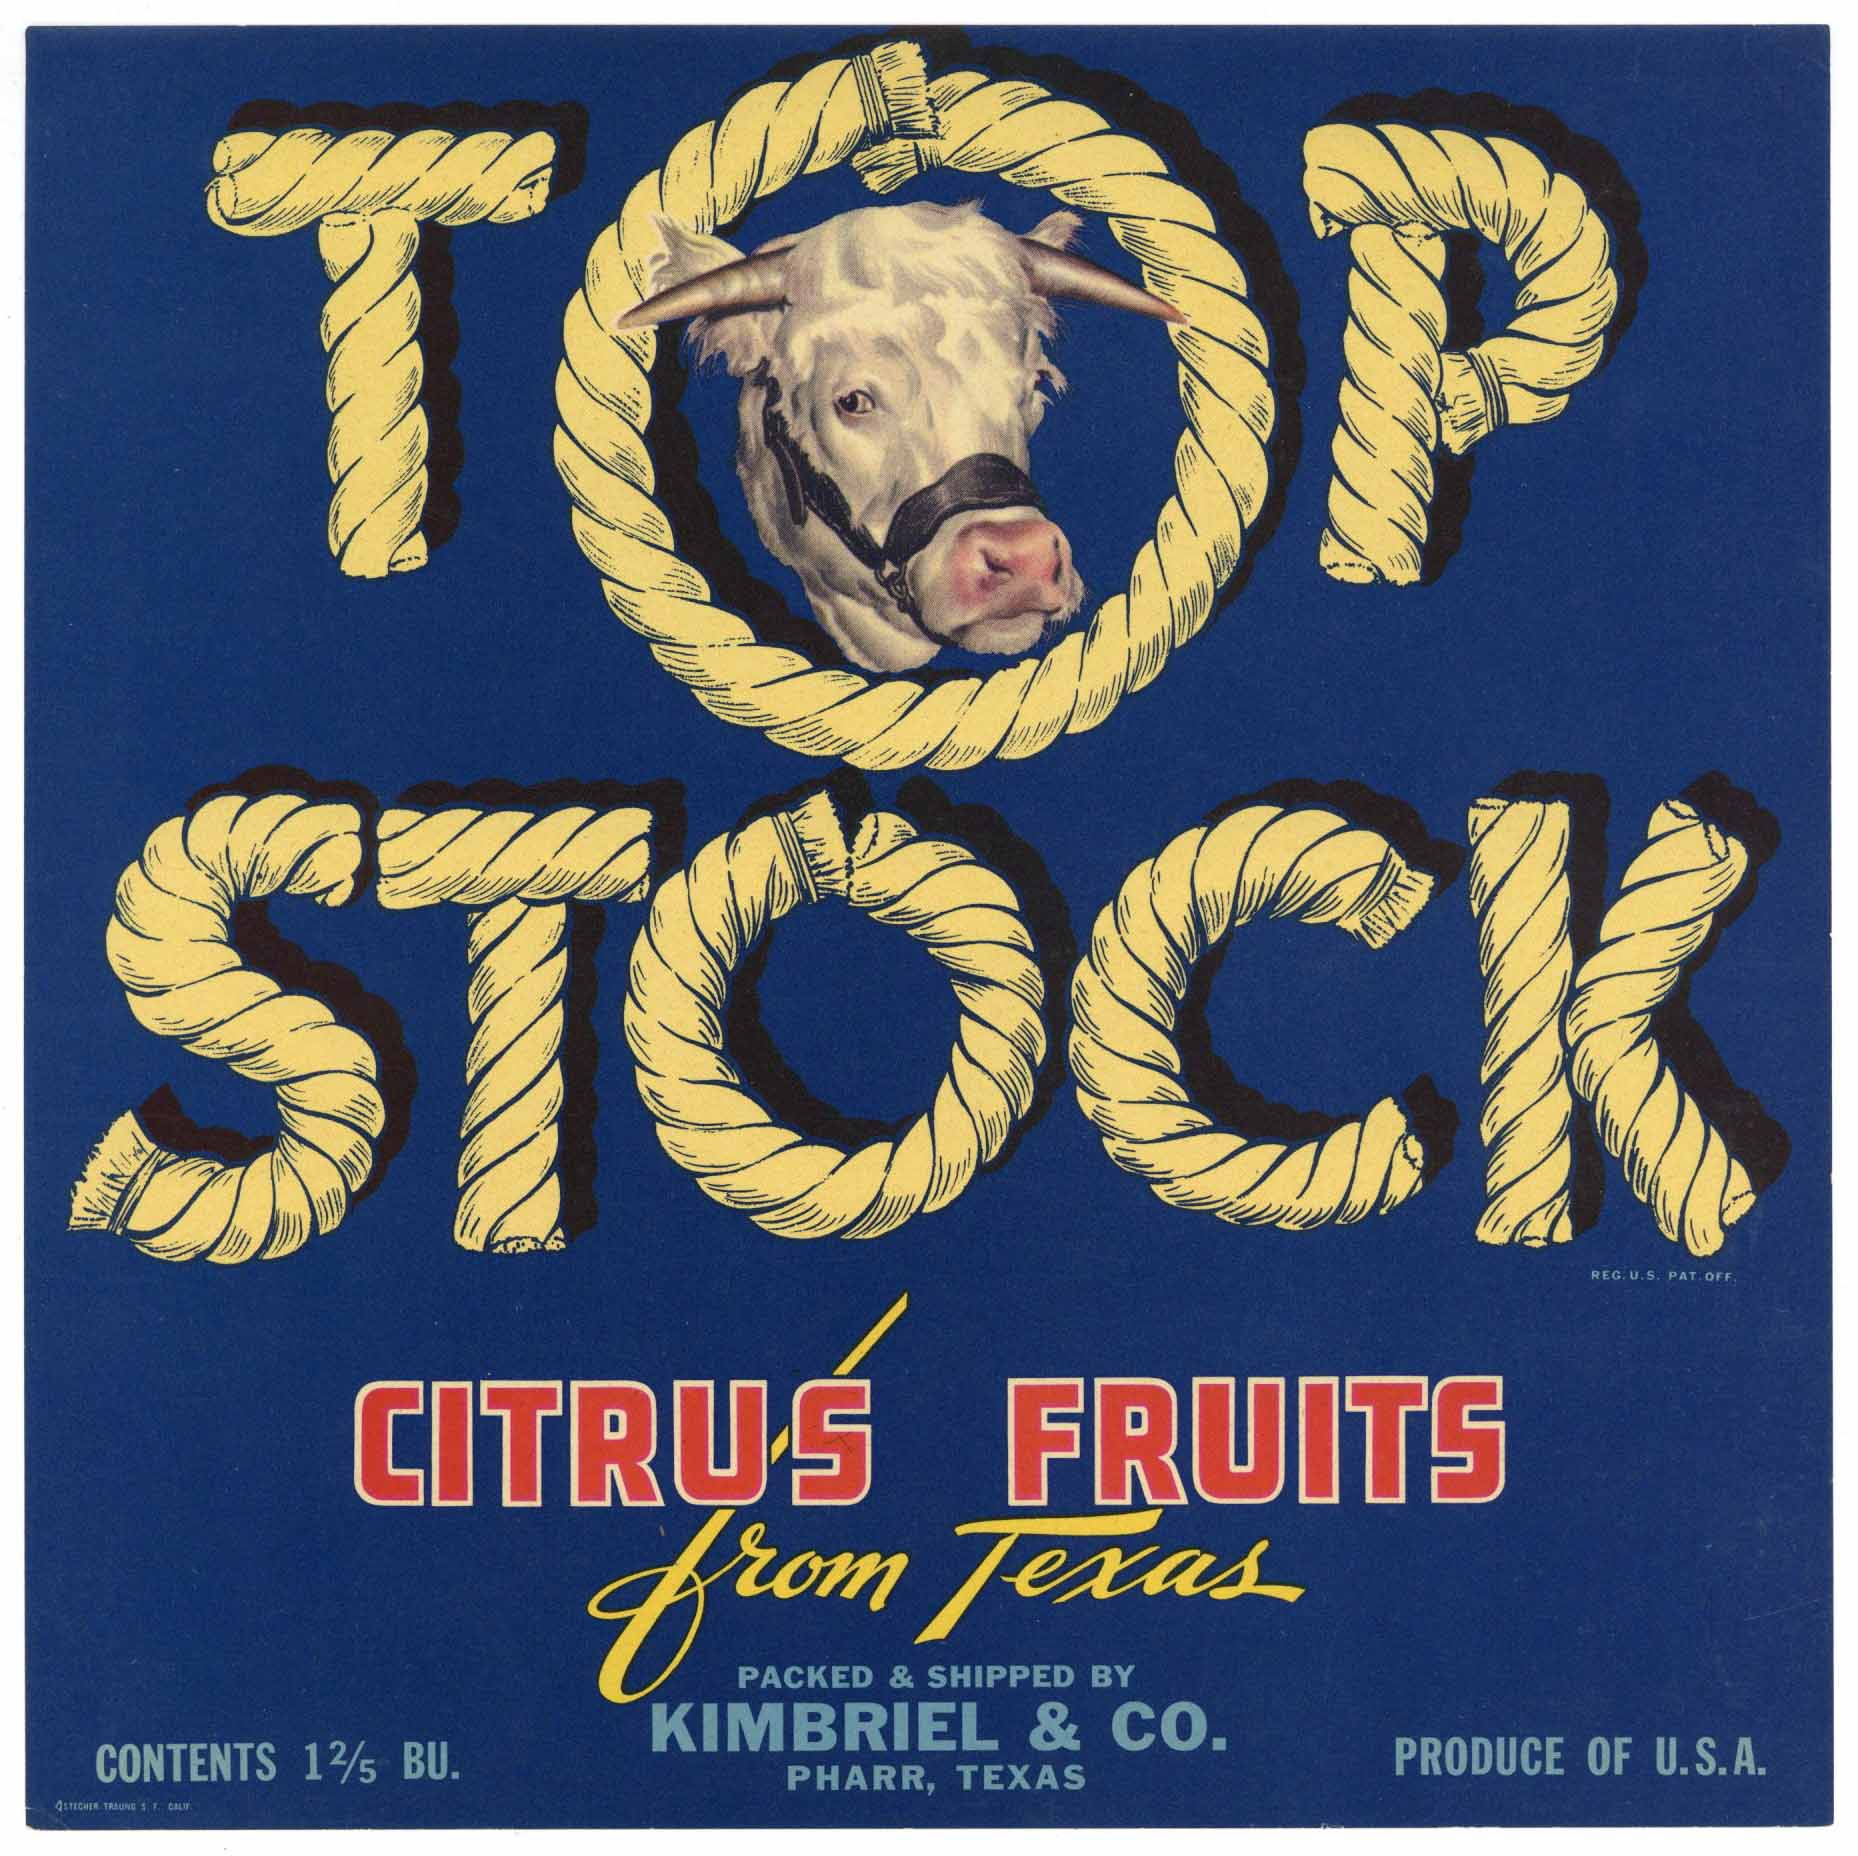 Top Stock Brand Vintage Pharr Texas Citrus Crate Label